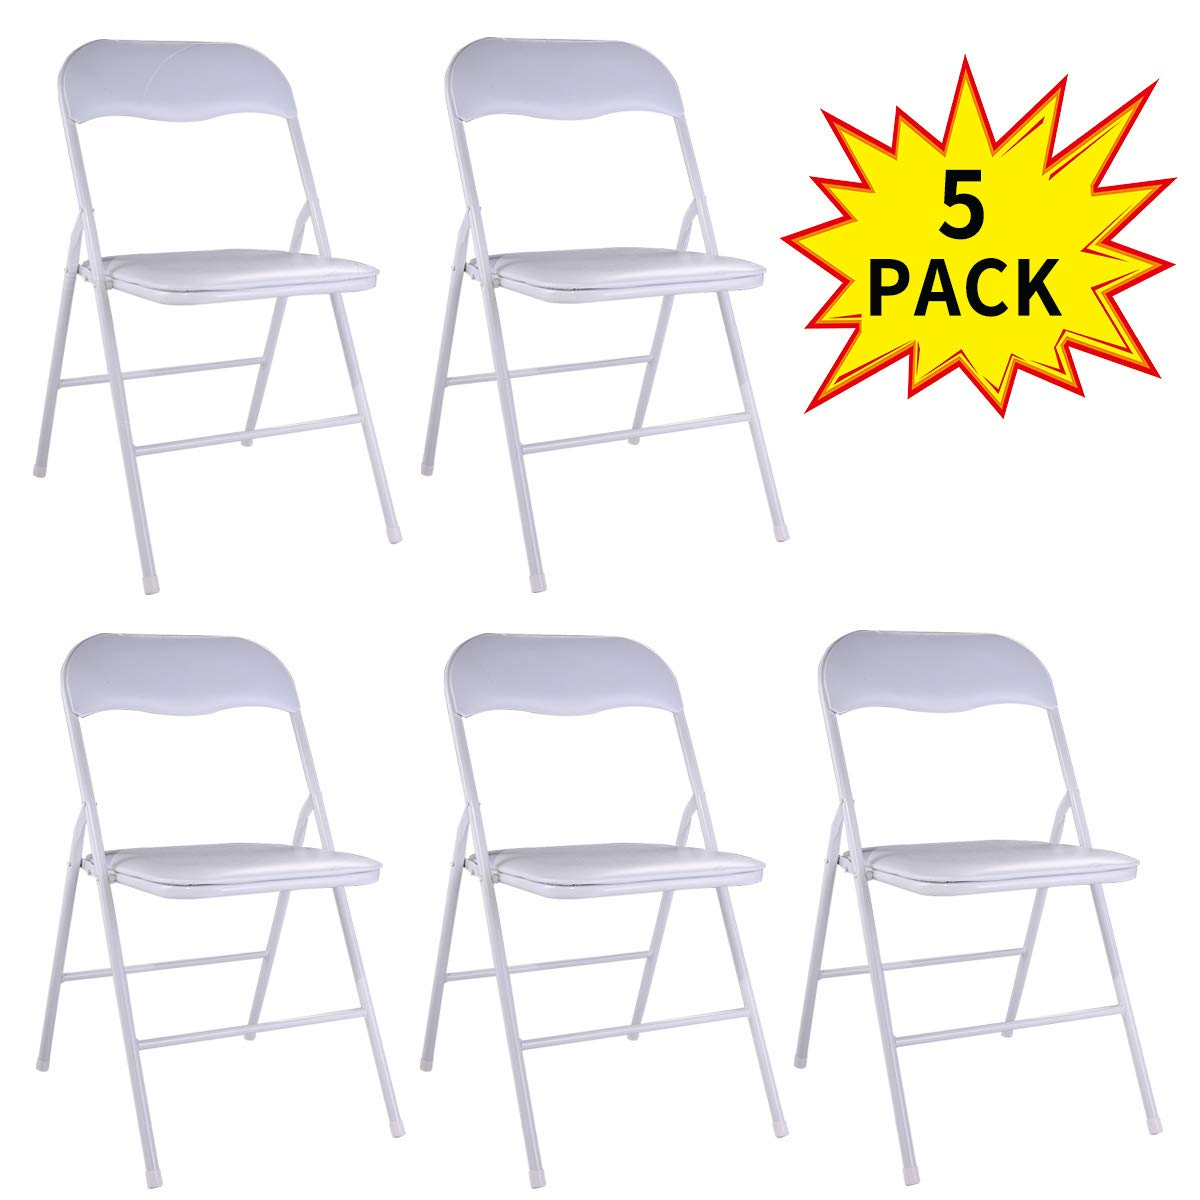 5-Pack Plastic Folding Chairs Wedding Banquet Seat Premium Party Event Chair White by LAZYMOON